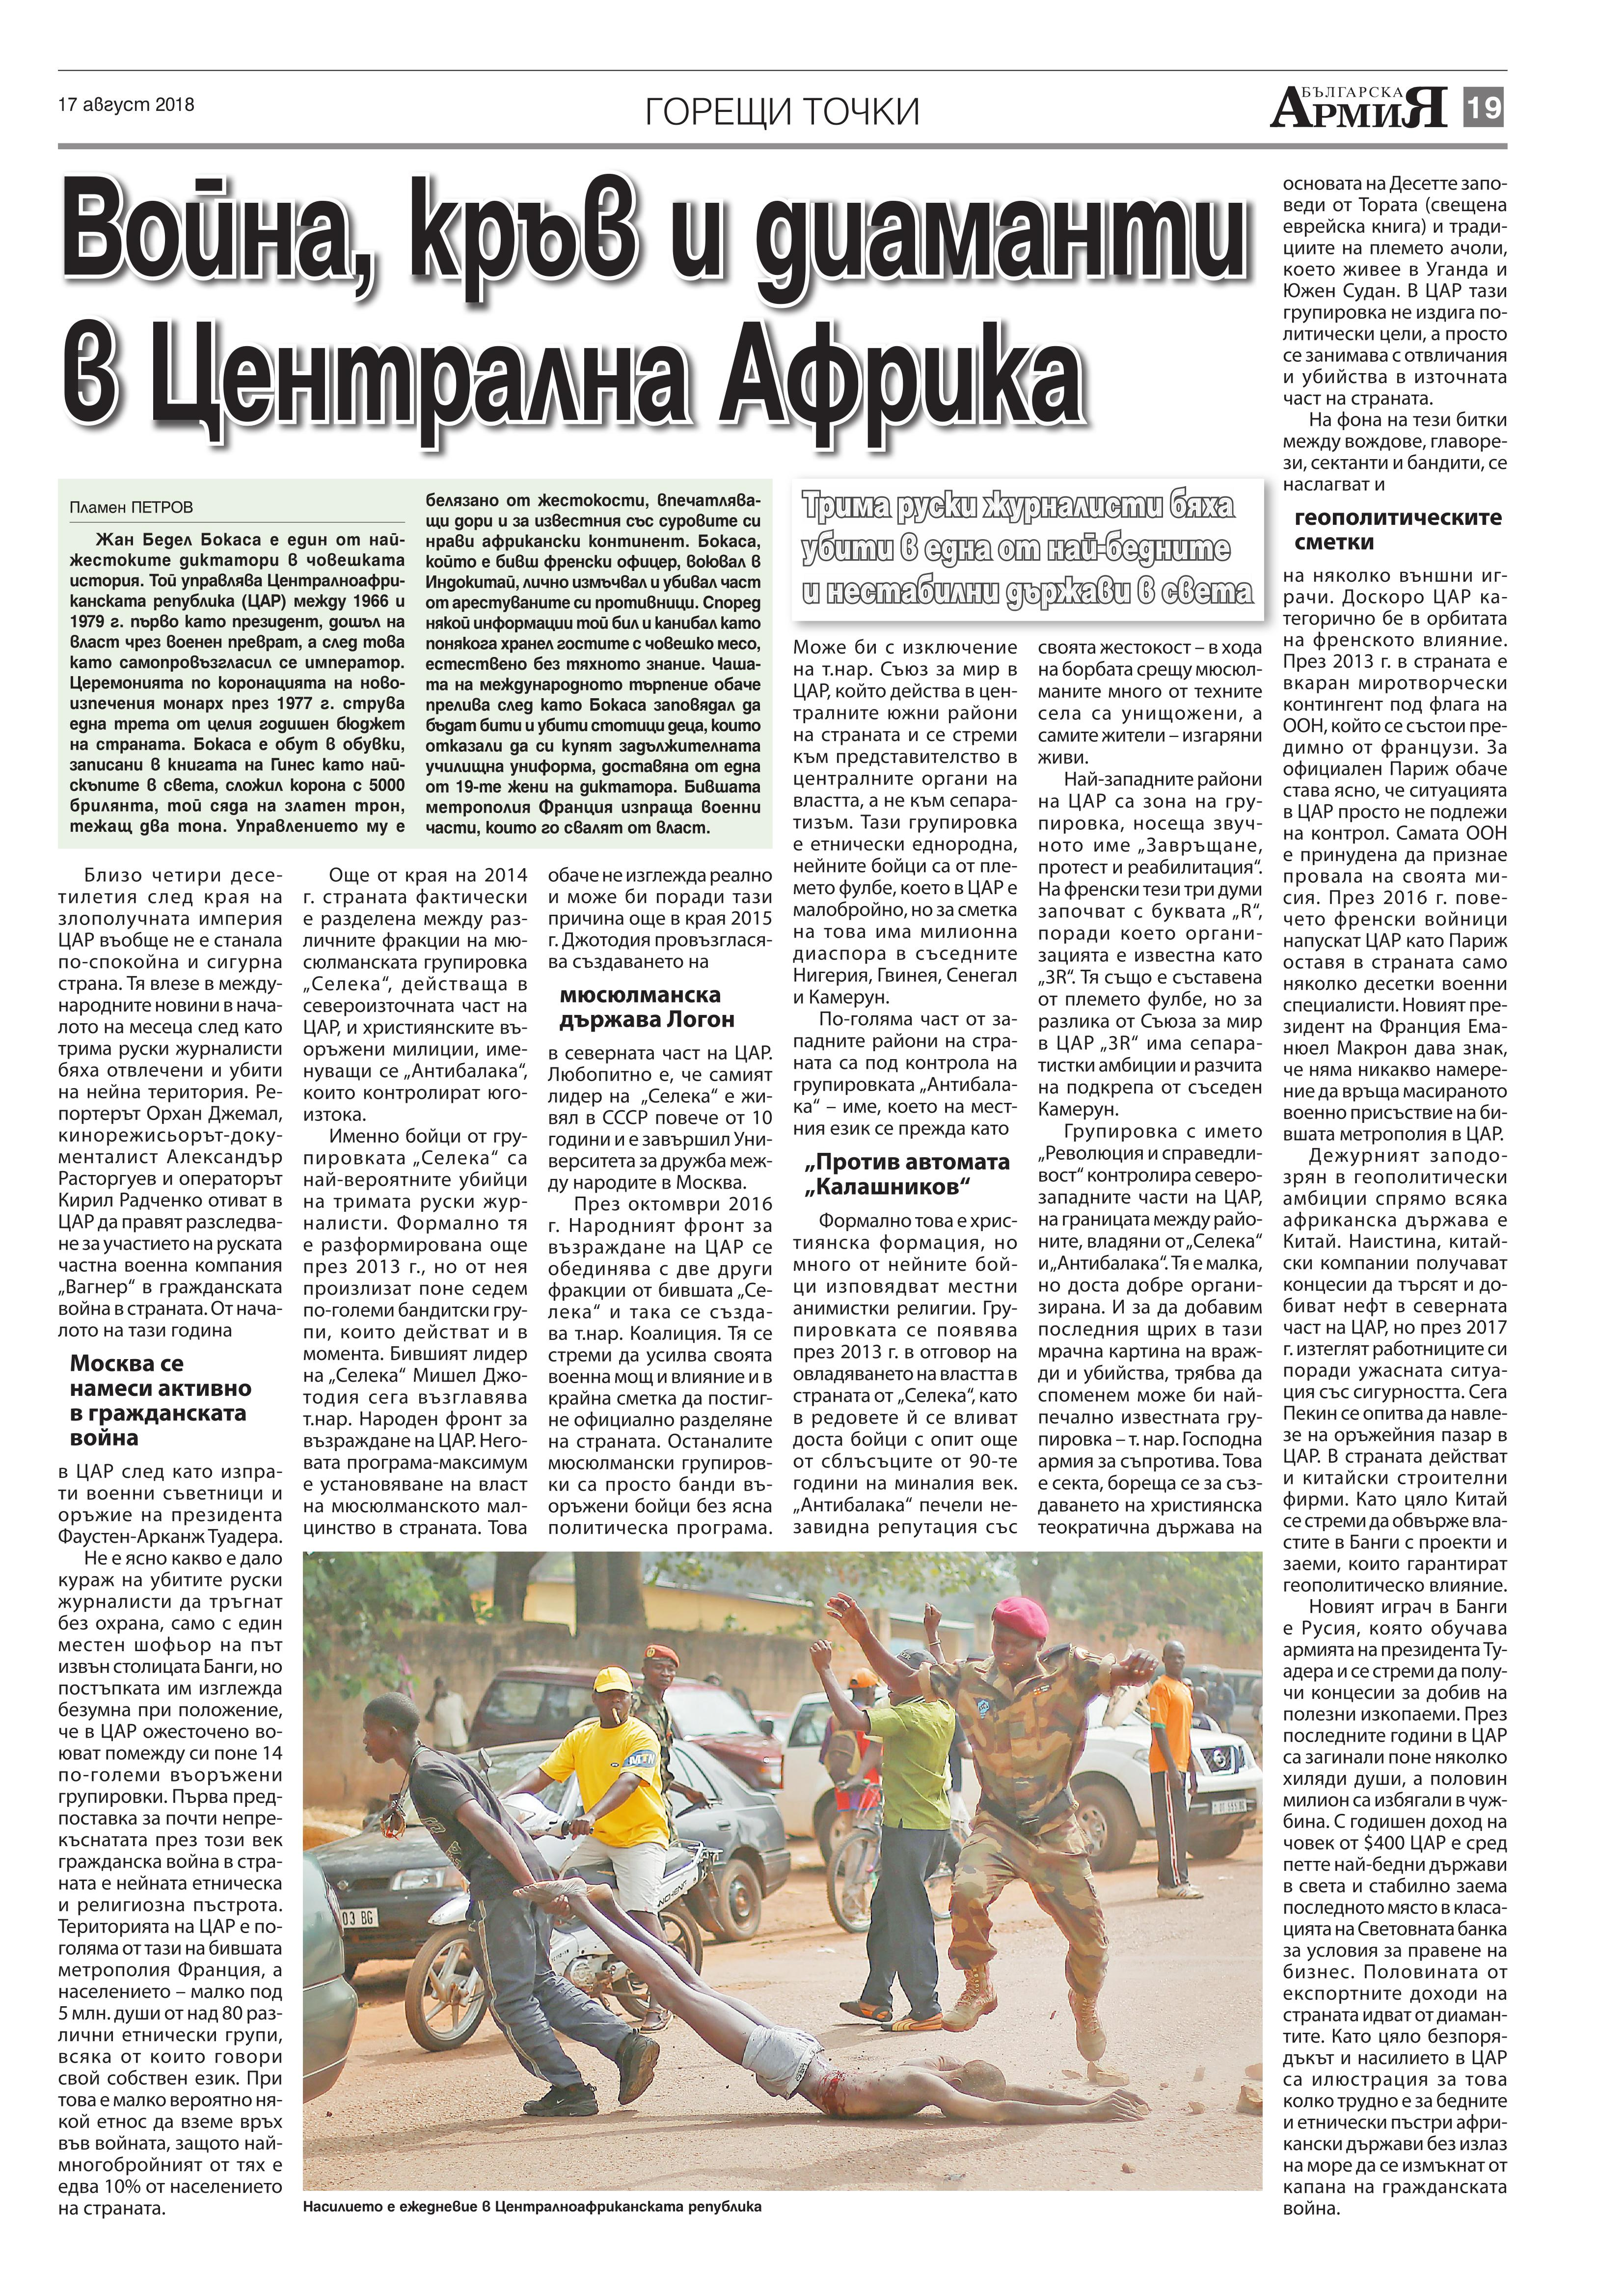 https://armymedia.bg/wp-content/uploads/2015/06/19.page1_-62.jpg